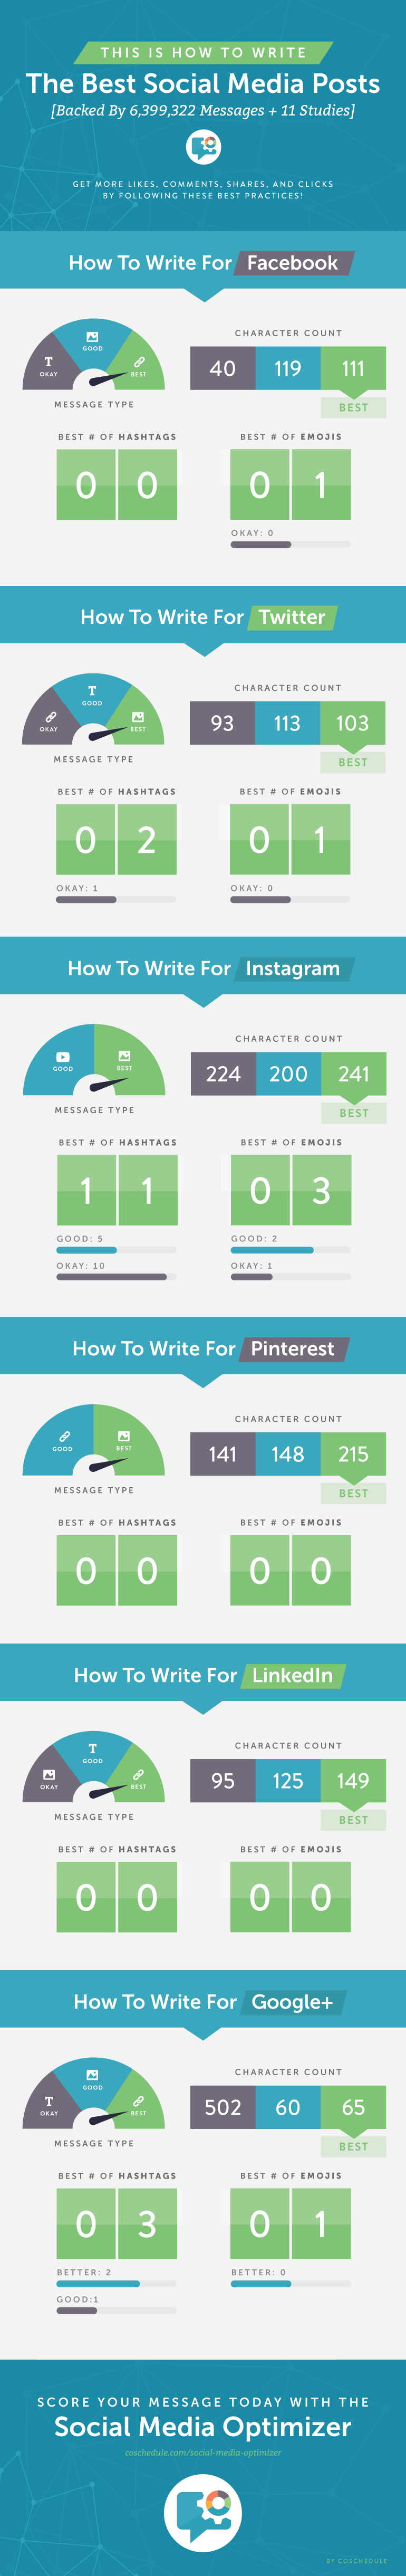 Infographic on optimizing social media posts for every network